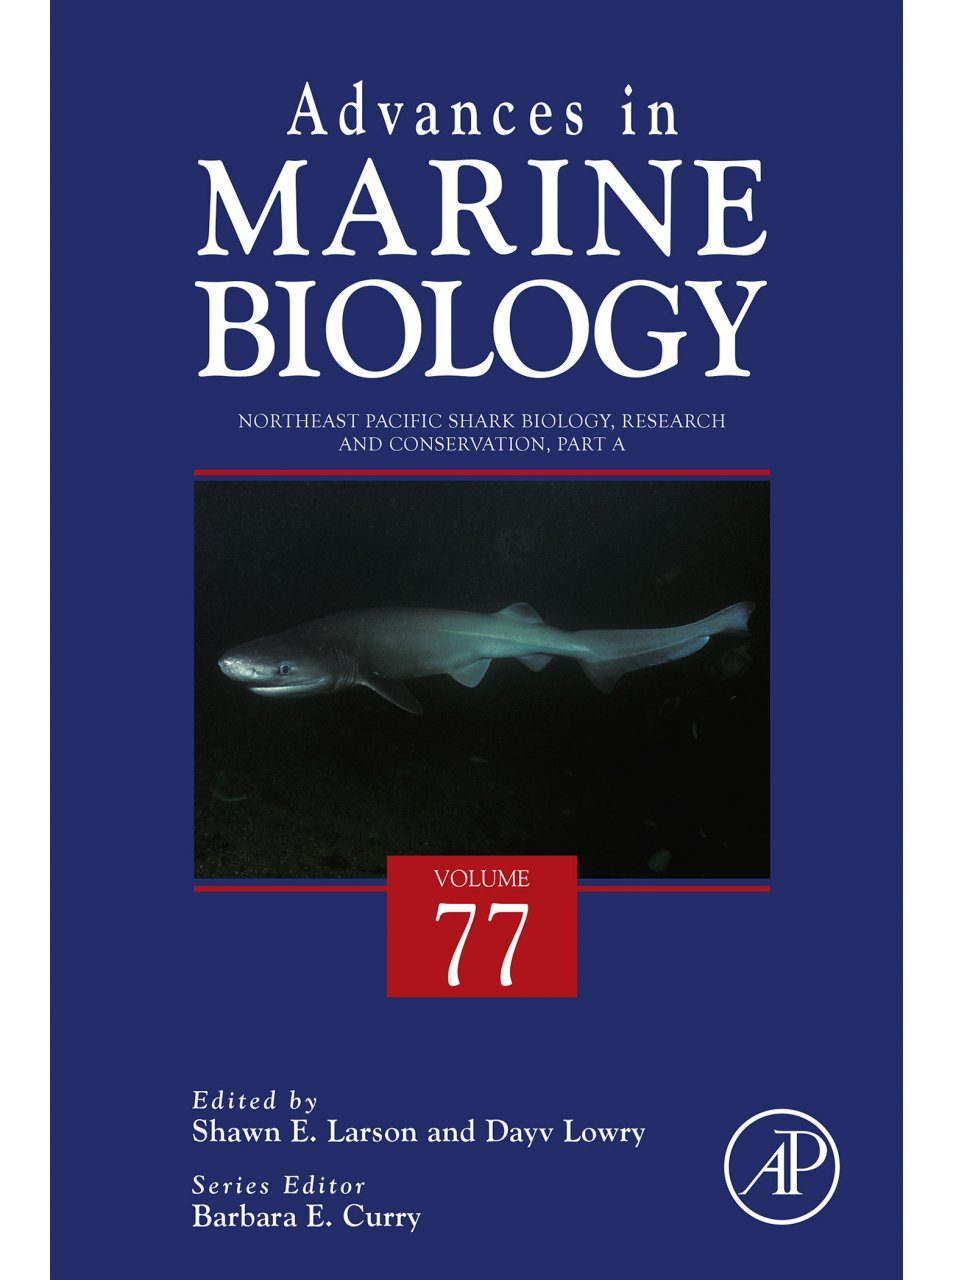 Advances in Marine Biology, Volume 77